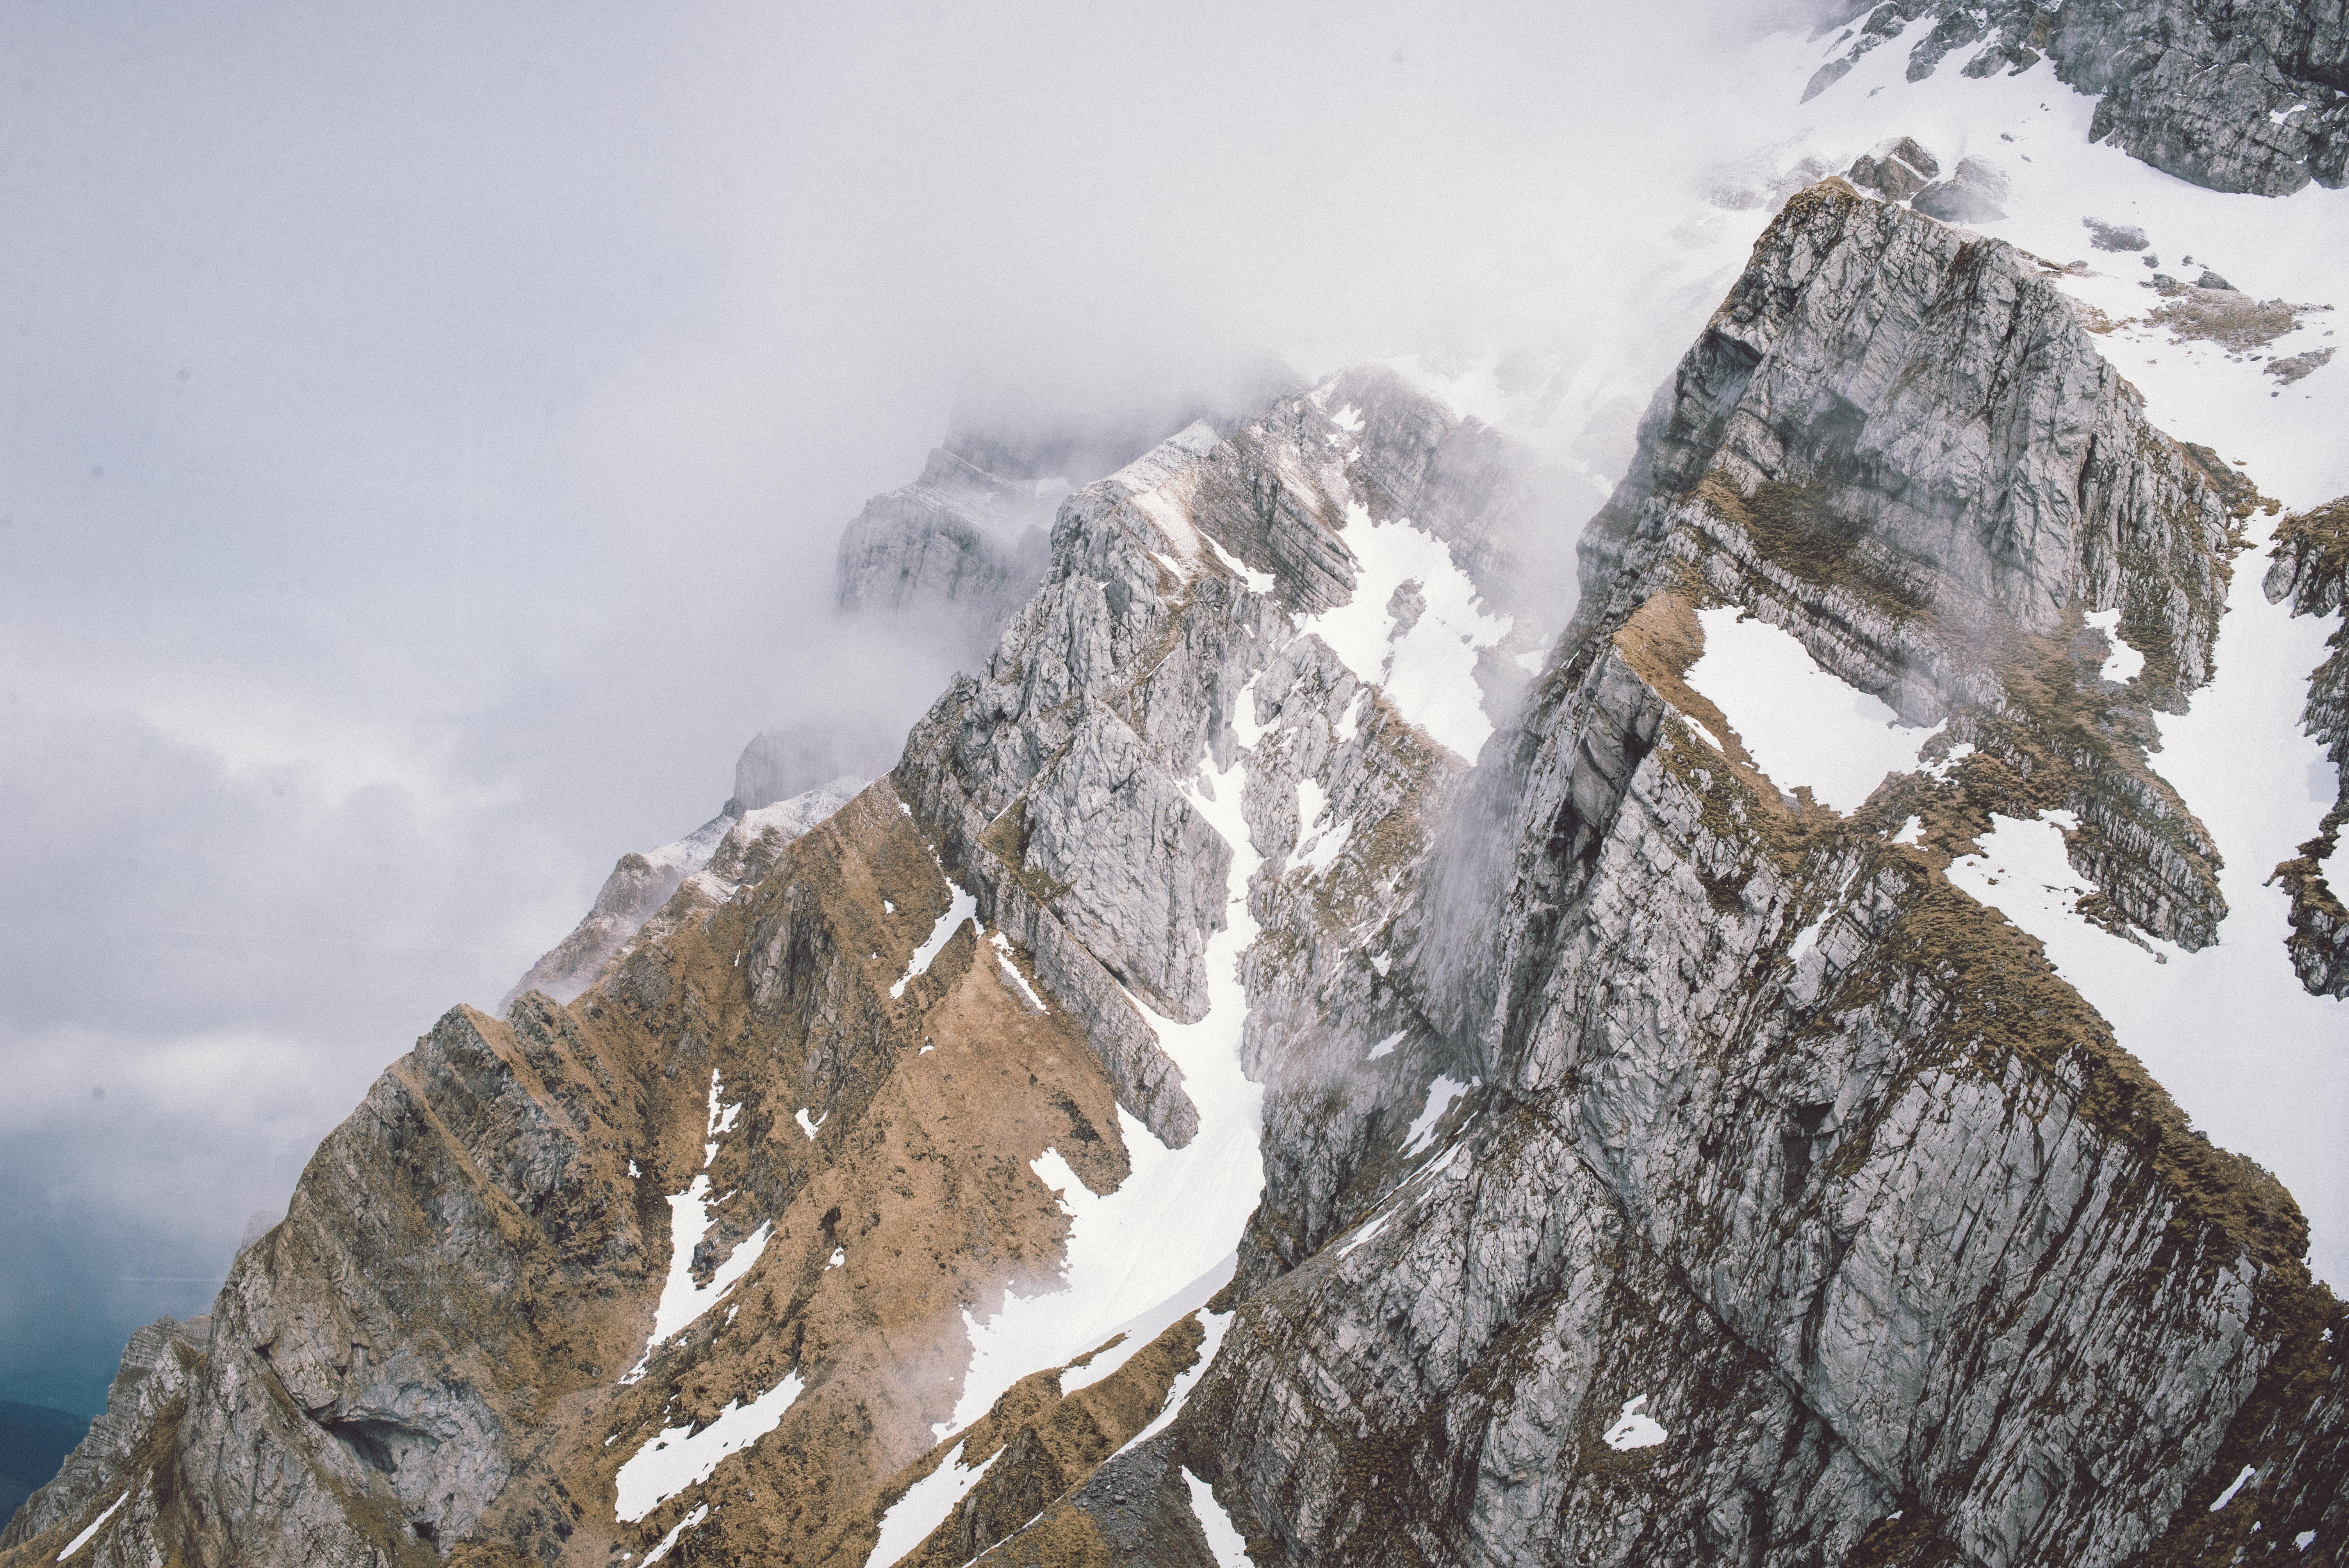 close-up photography of mountain peak